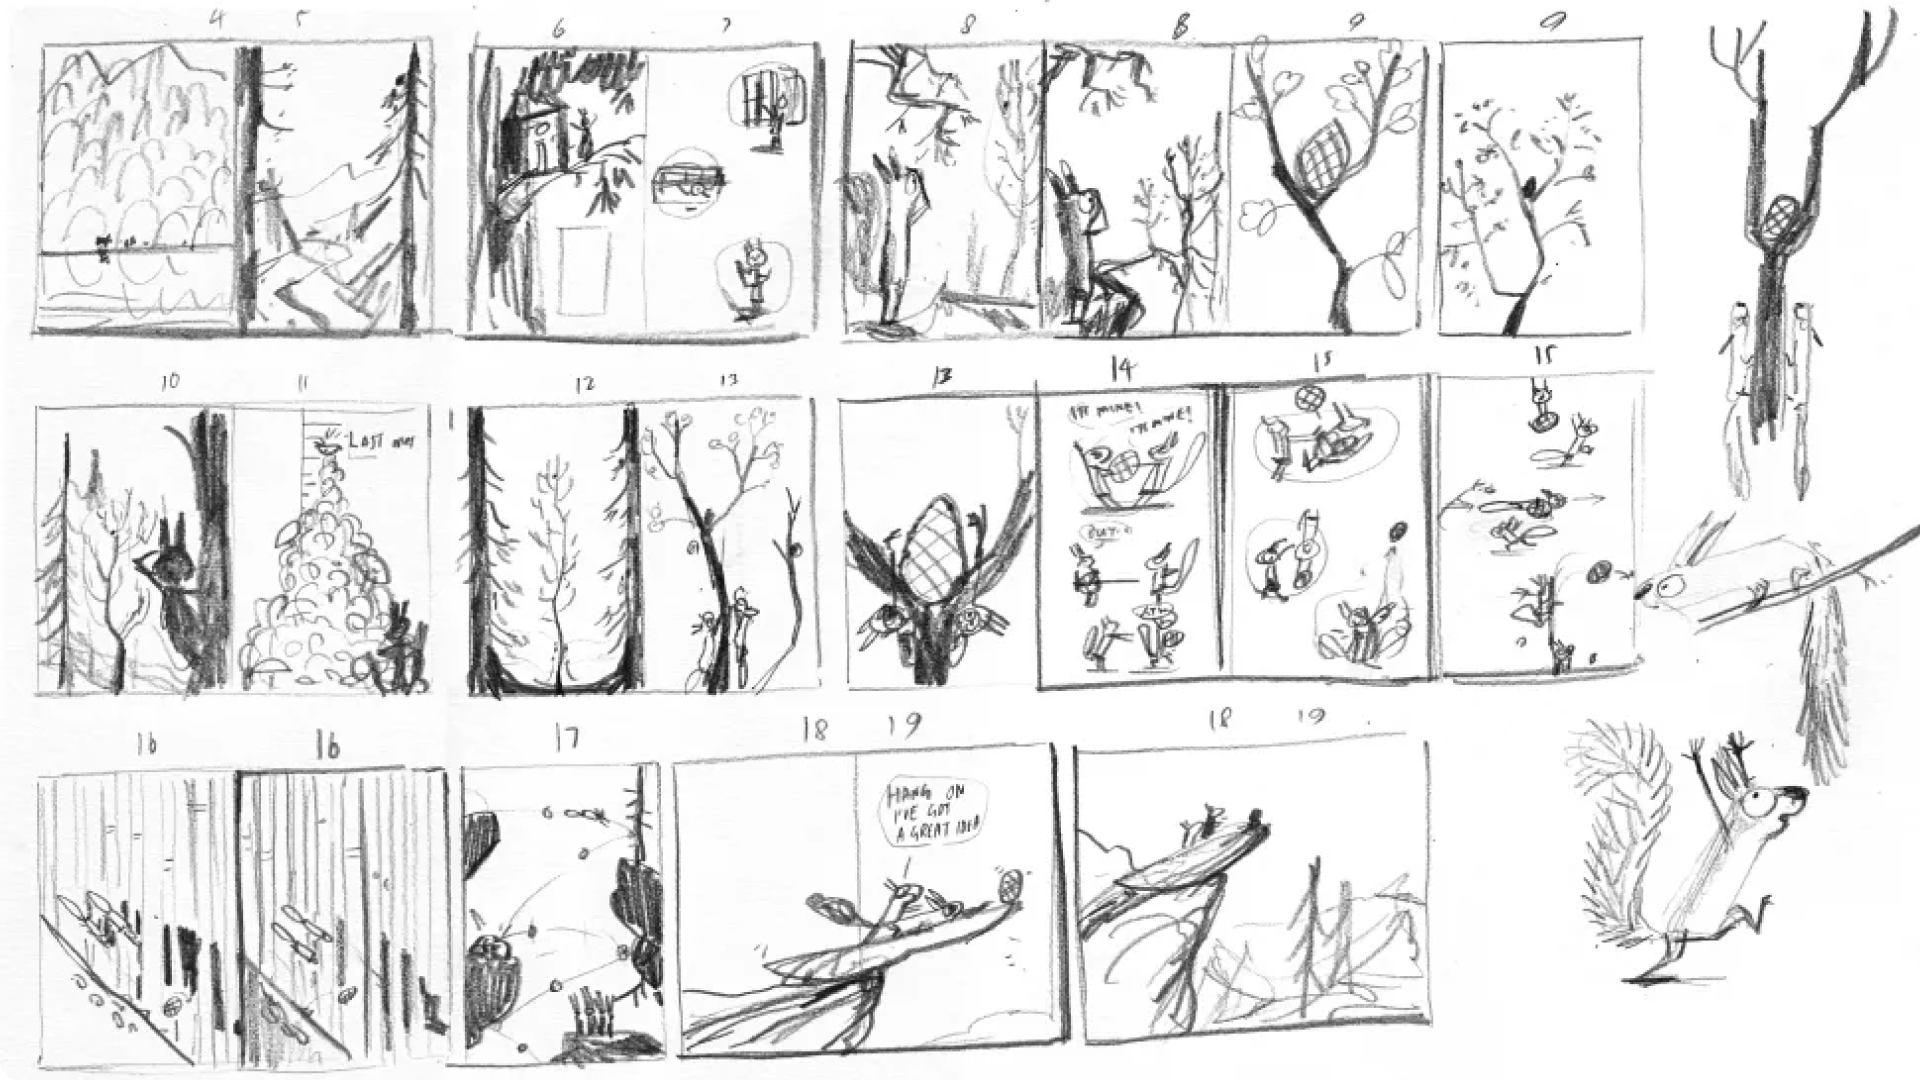 Hand-drawn storyboard and thumbails from The Squirrels who Squabbled